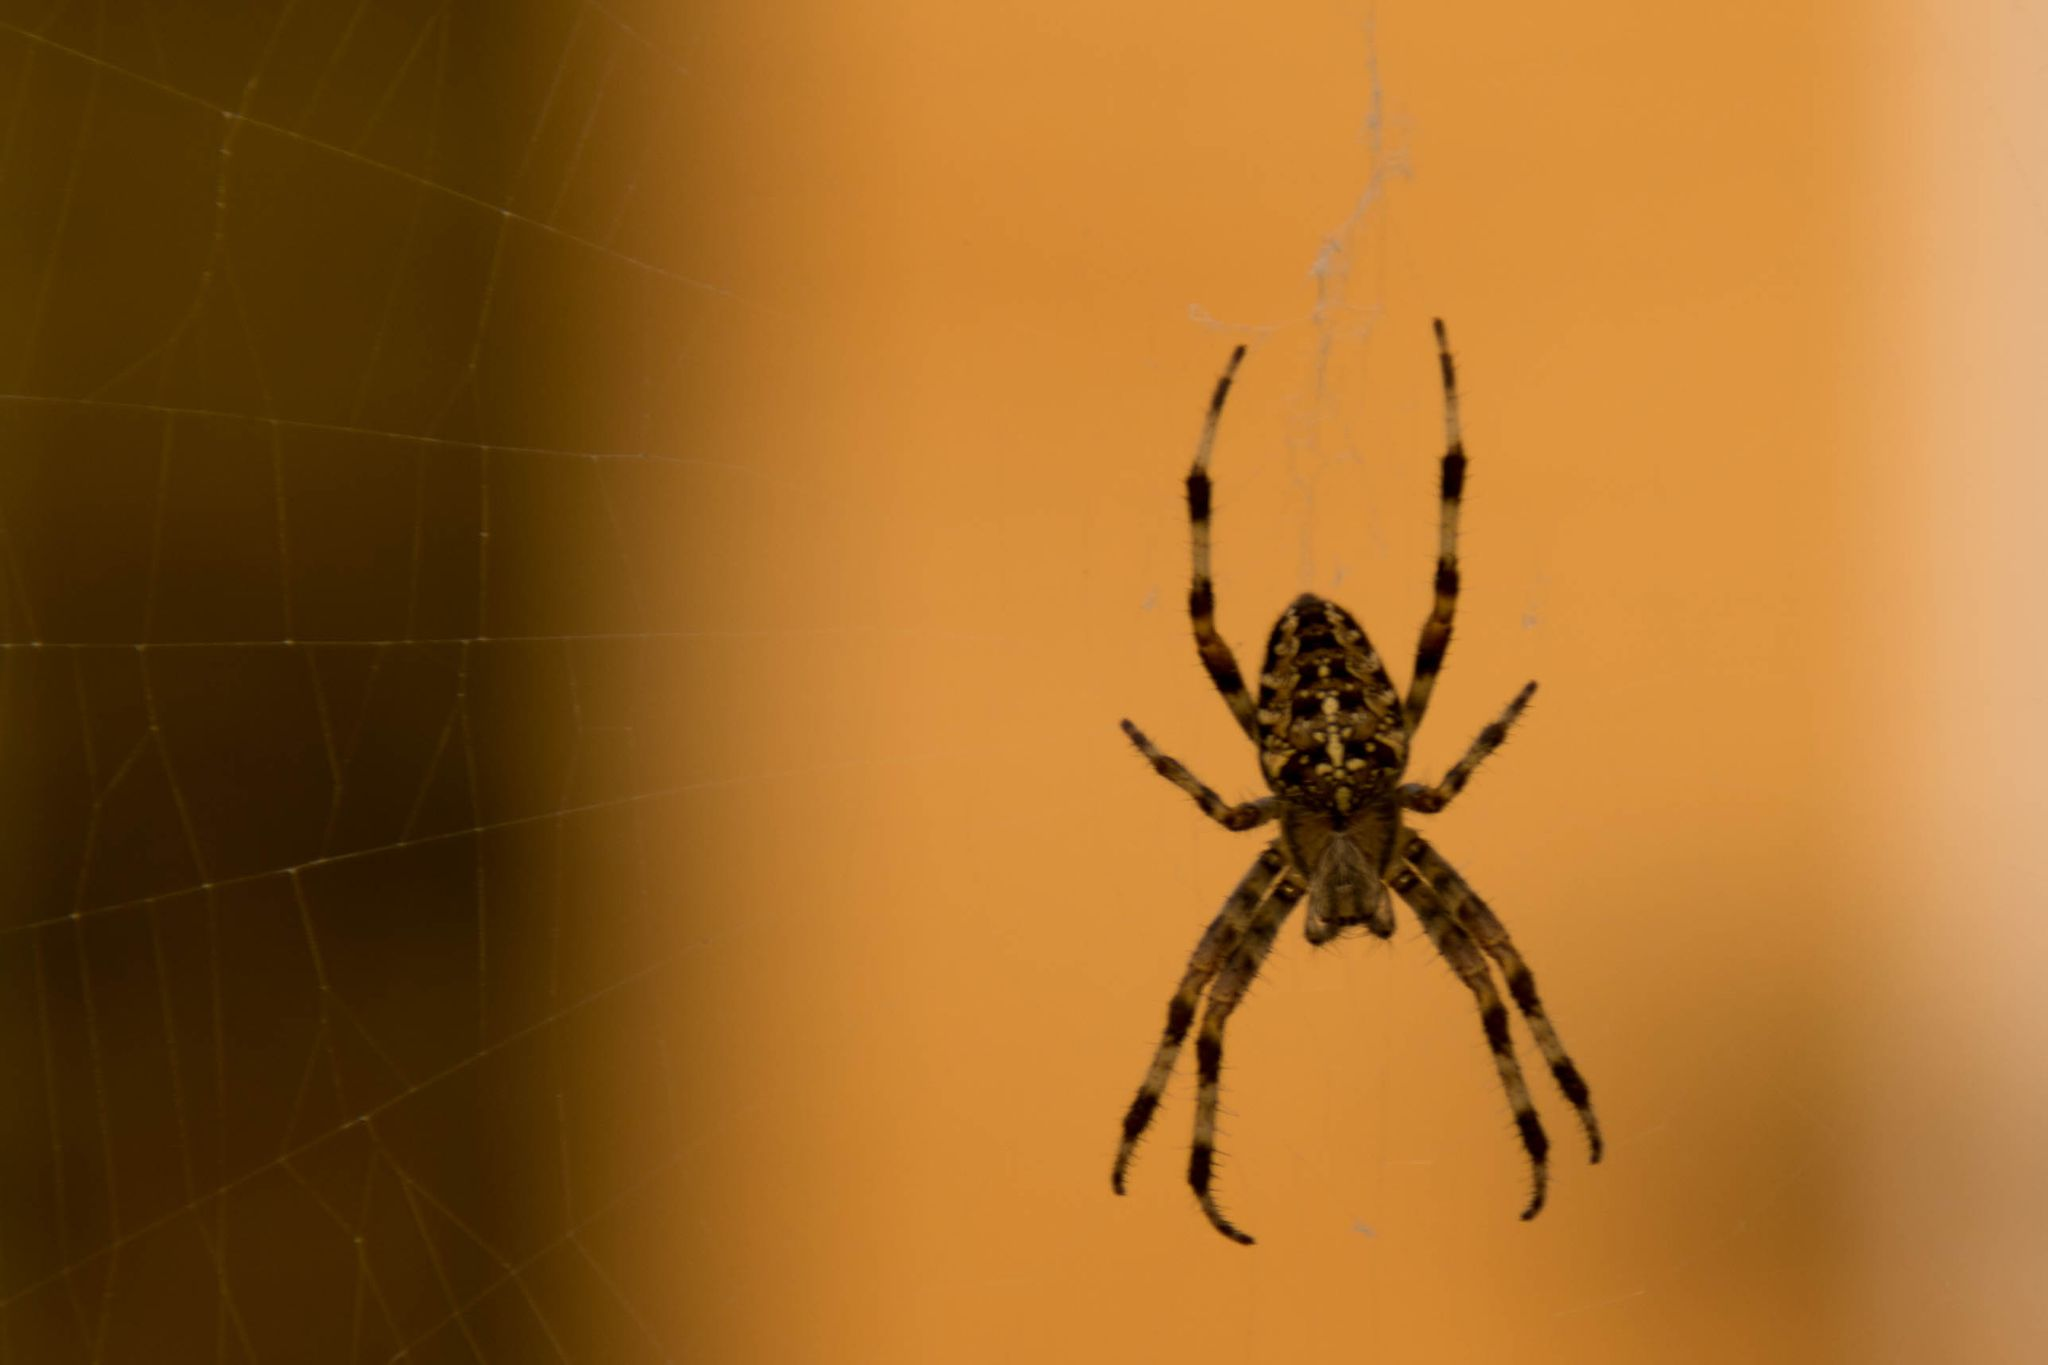 Spider by Andrea Leprini